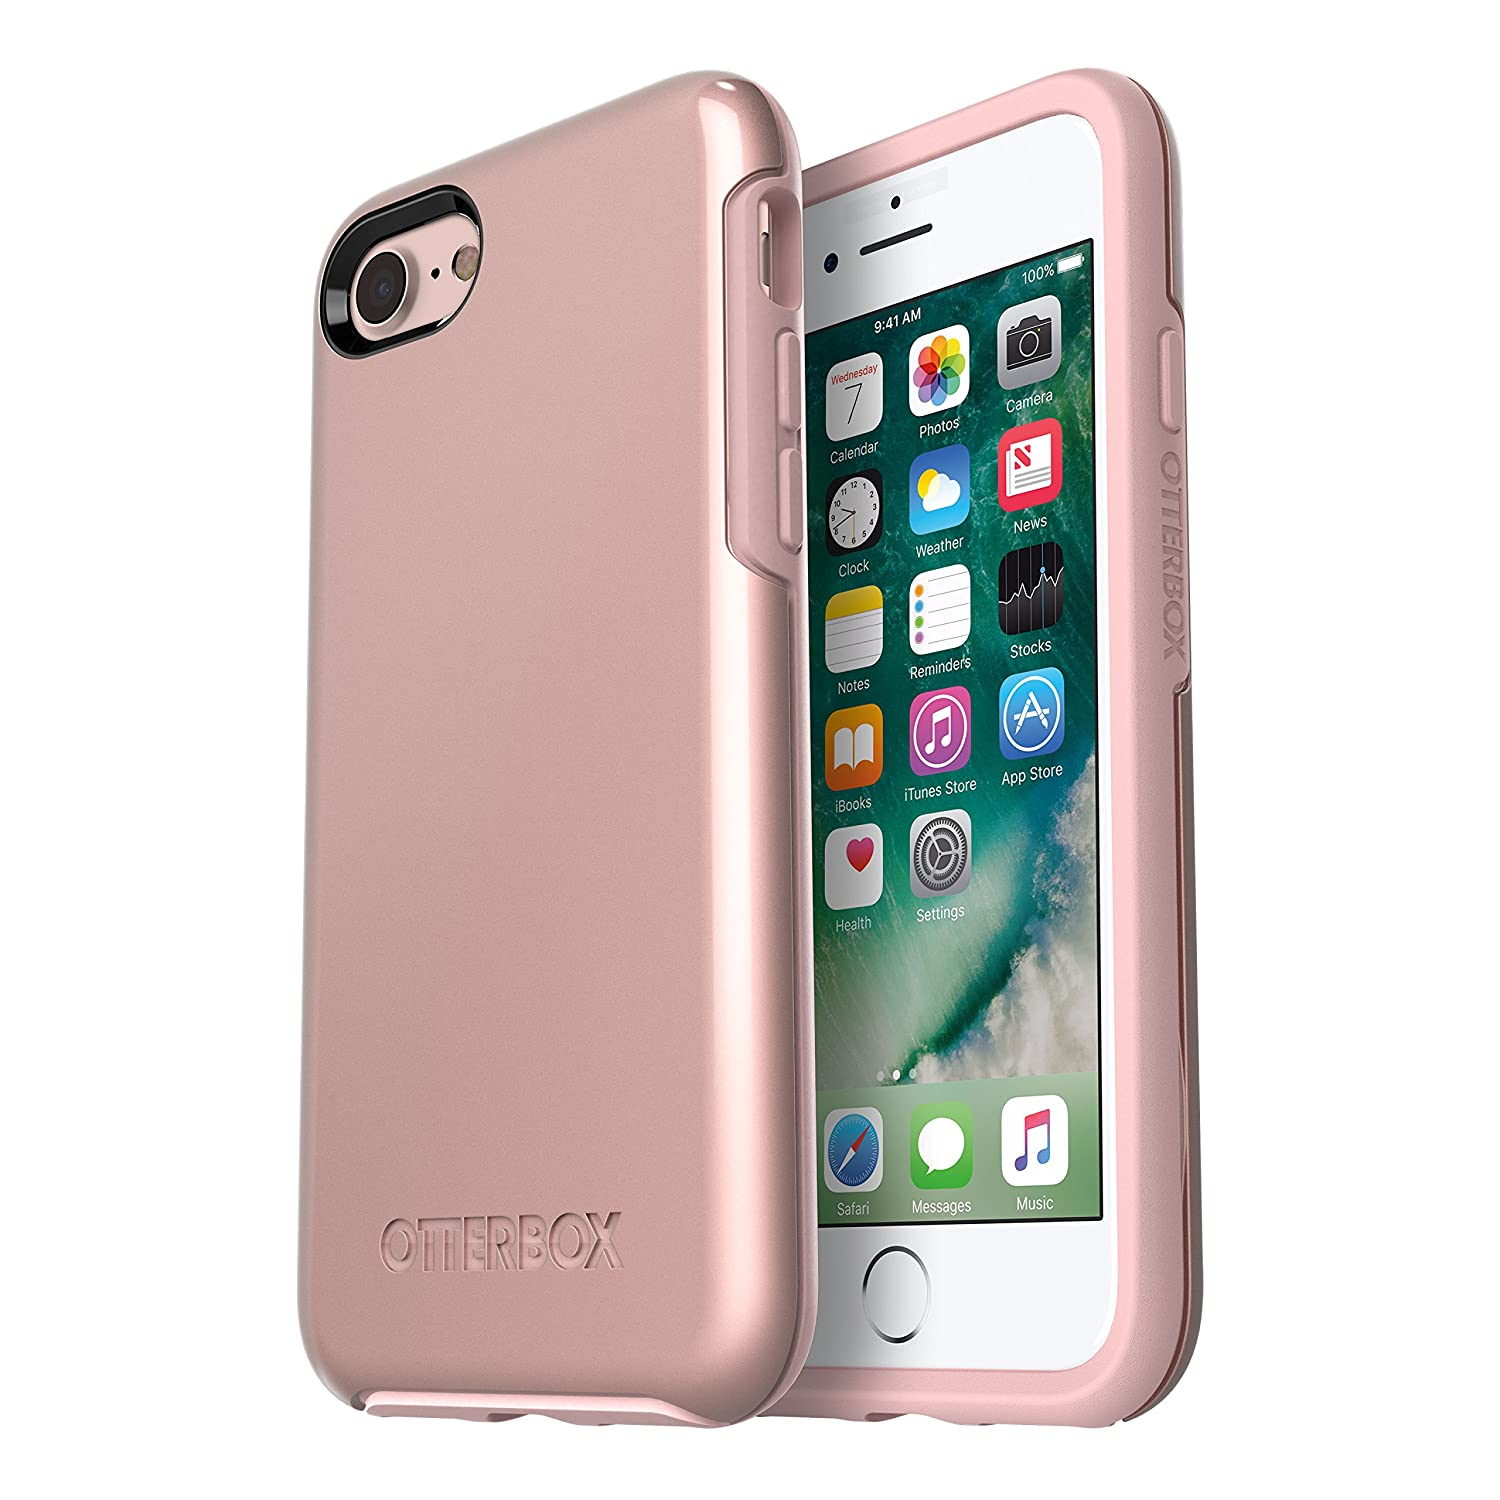 OtterBox SYMMETRY SERIES Case for iPhone 8 & iPhone 7 (NOT Plus) - Retail Packaging - ROSE GOLD (PALE PINK/ROSE GOLD GRAPHIC)